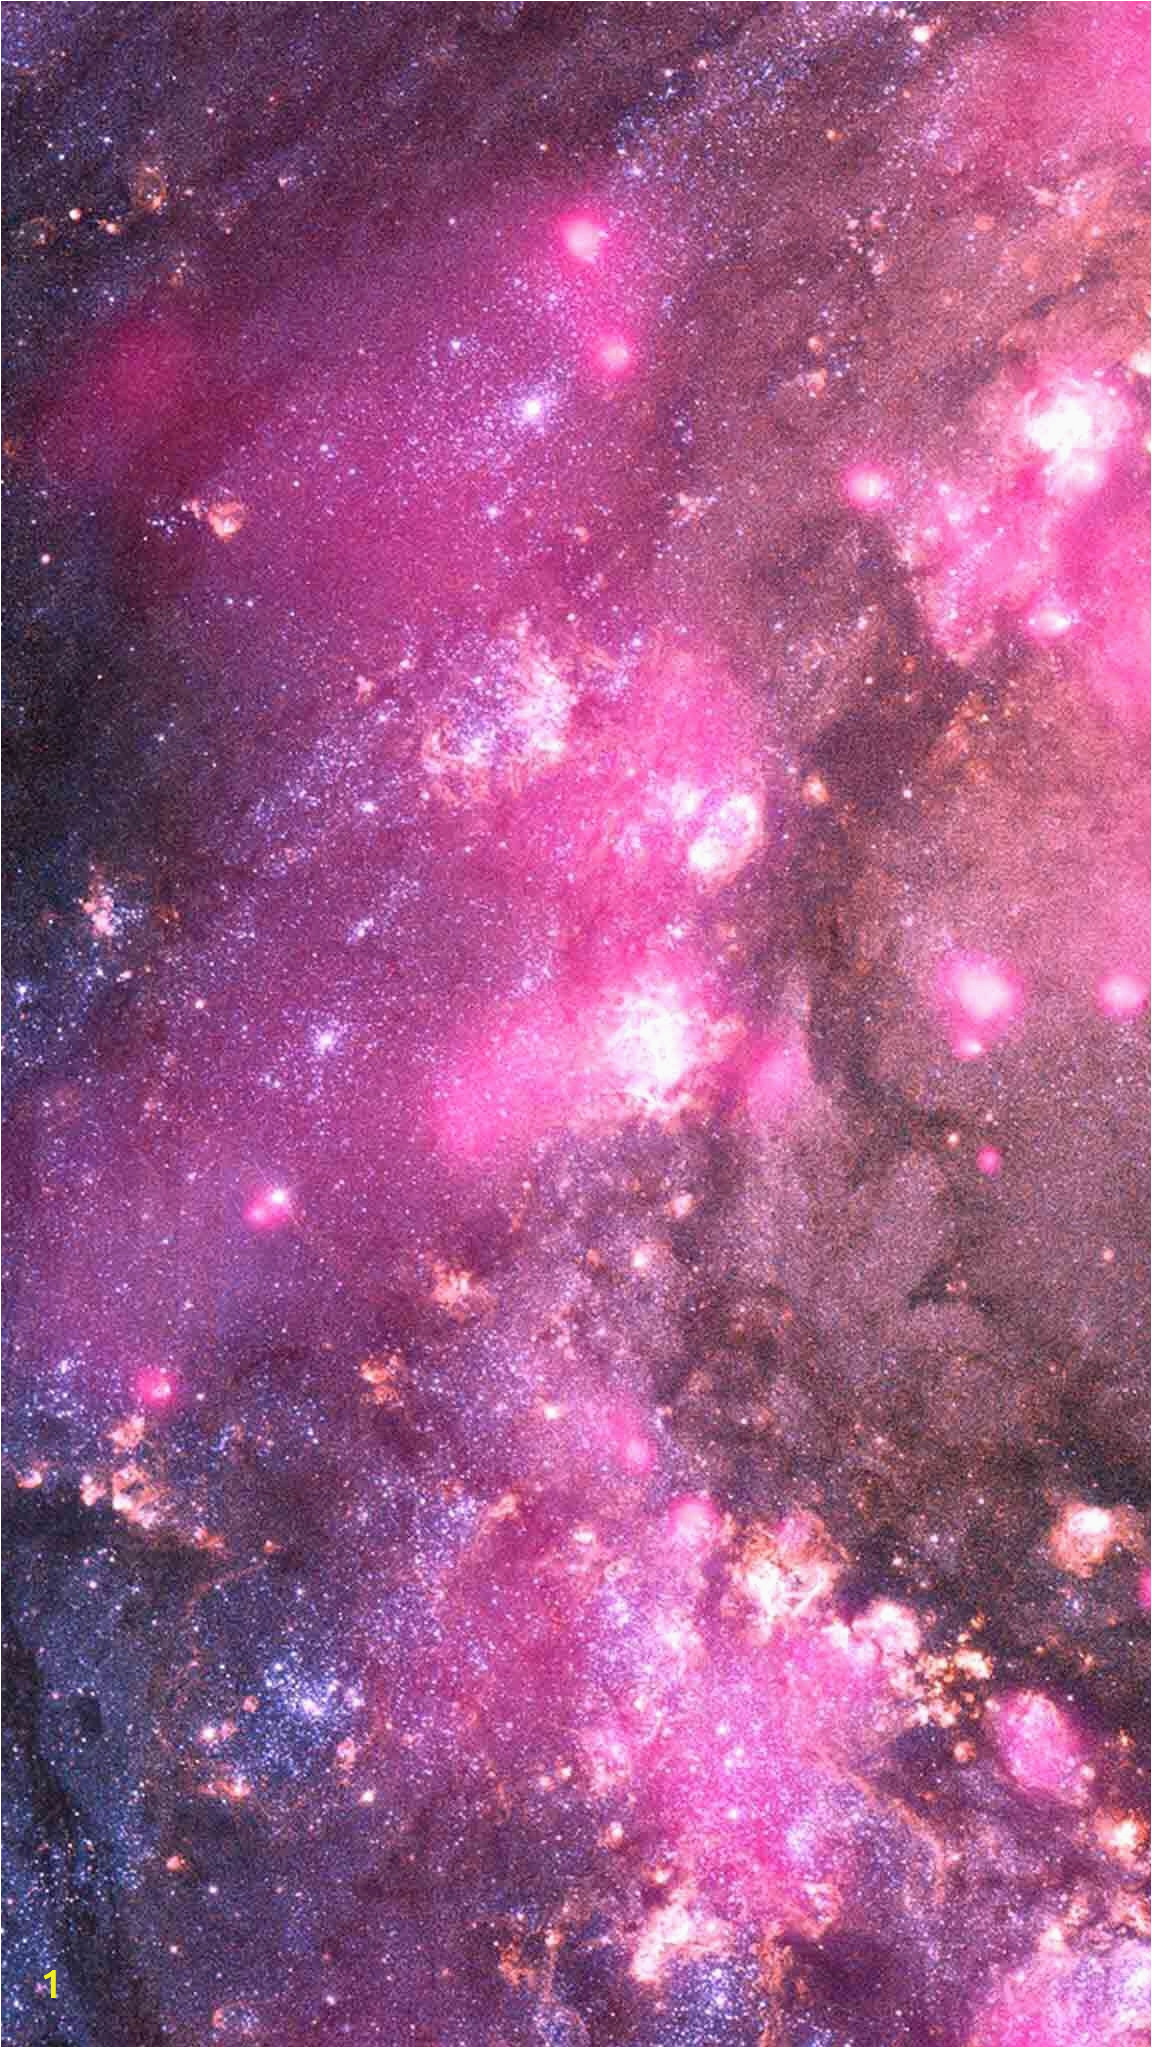 pink galaxy background unique space pink color stars space and galaxy 2019 of pink galaxy background